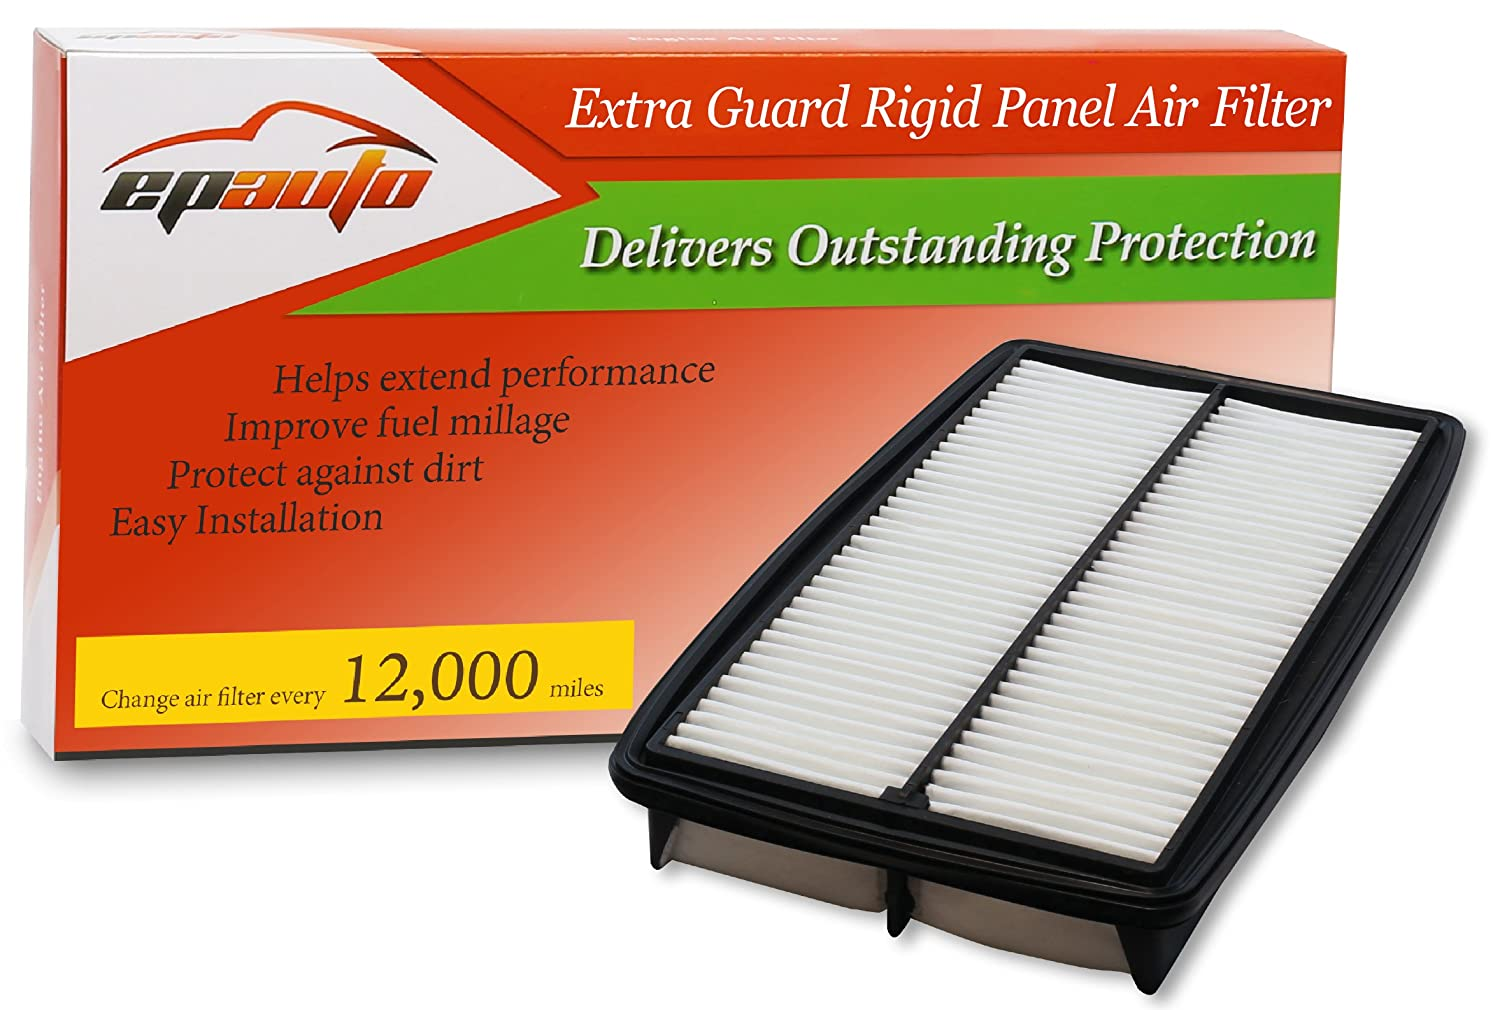 Amazon.com: EPAuto GP013 (CA10013) Honda/Acura Replacement Extra Guard  Rigid Panel Engine Air Filter for Odyssey (2005-2010), Pilot (2009-2015),  ...